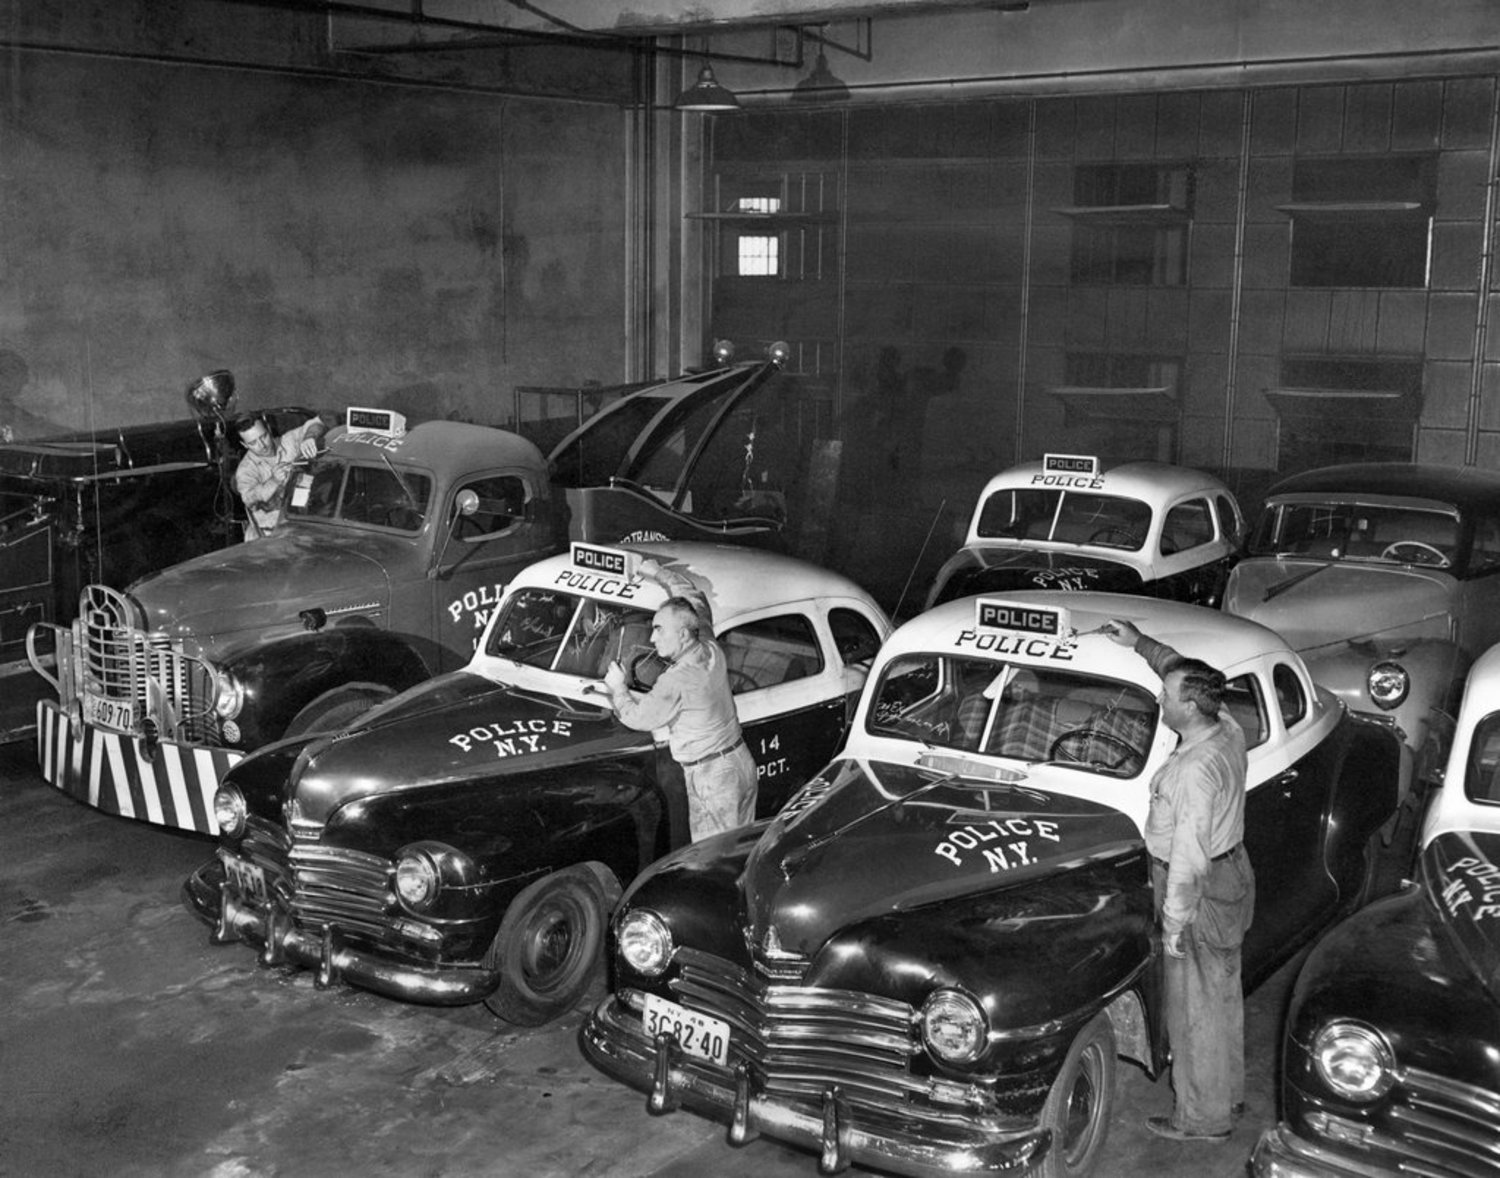 NYPD Police Cars, 1949